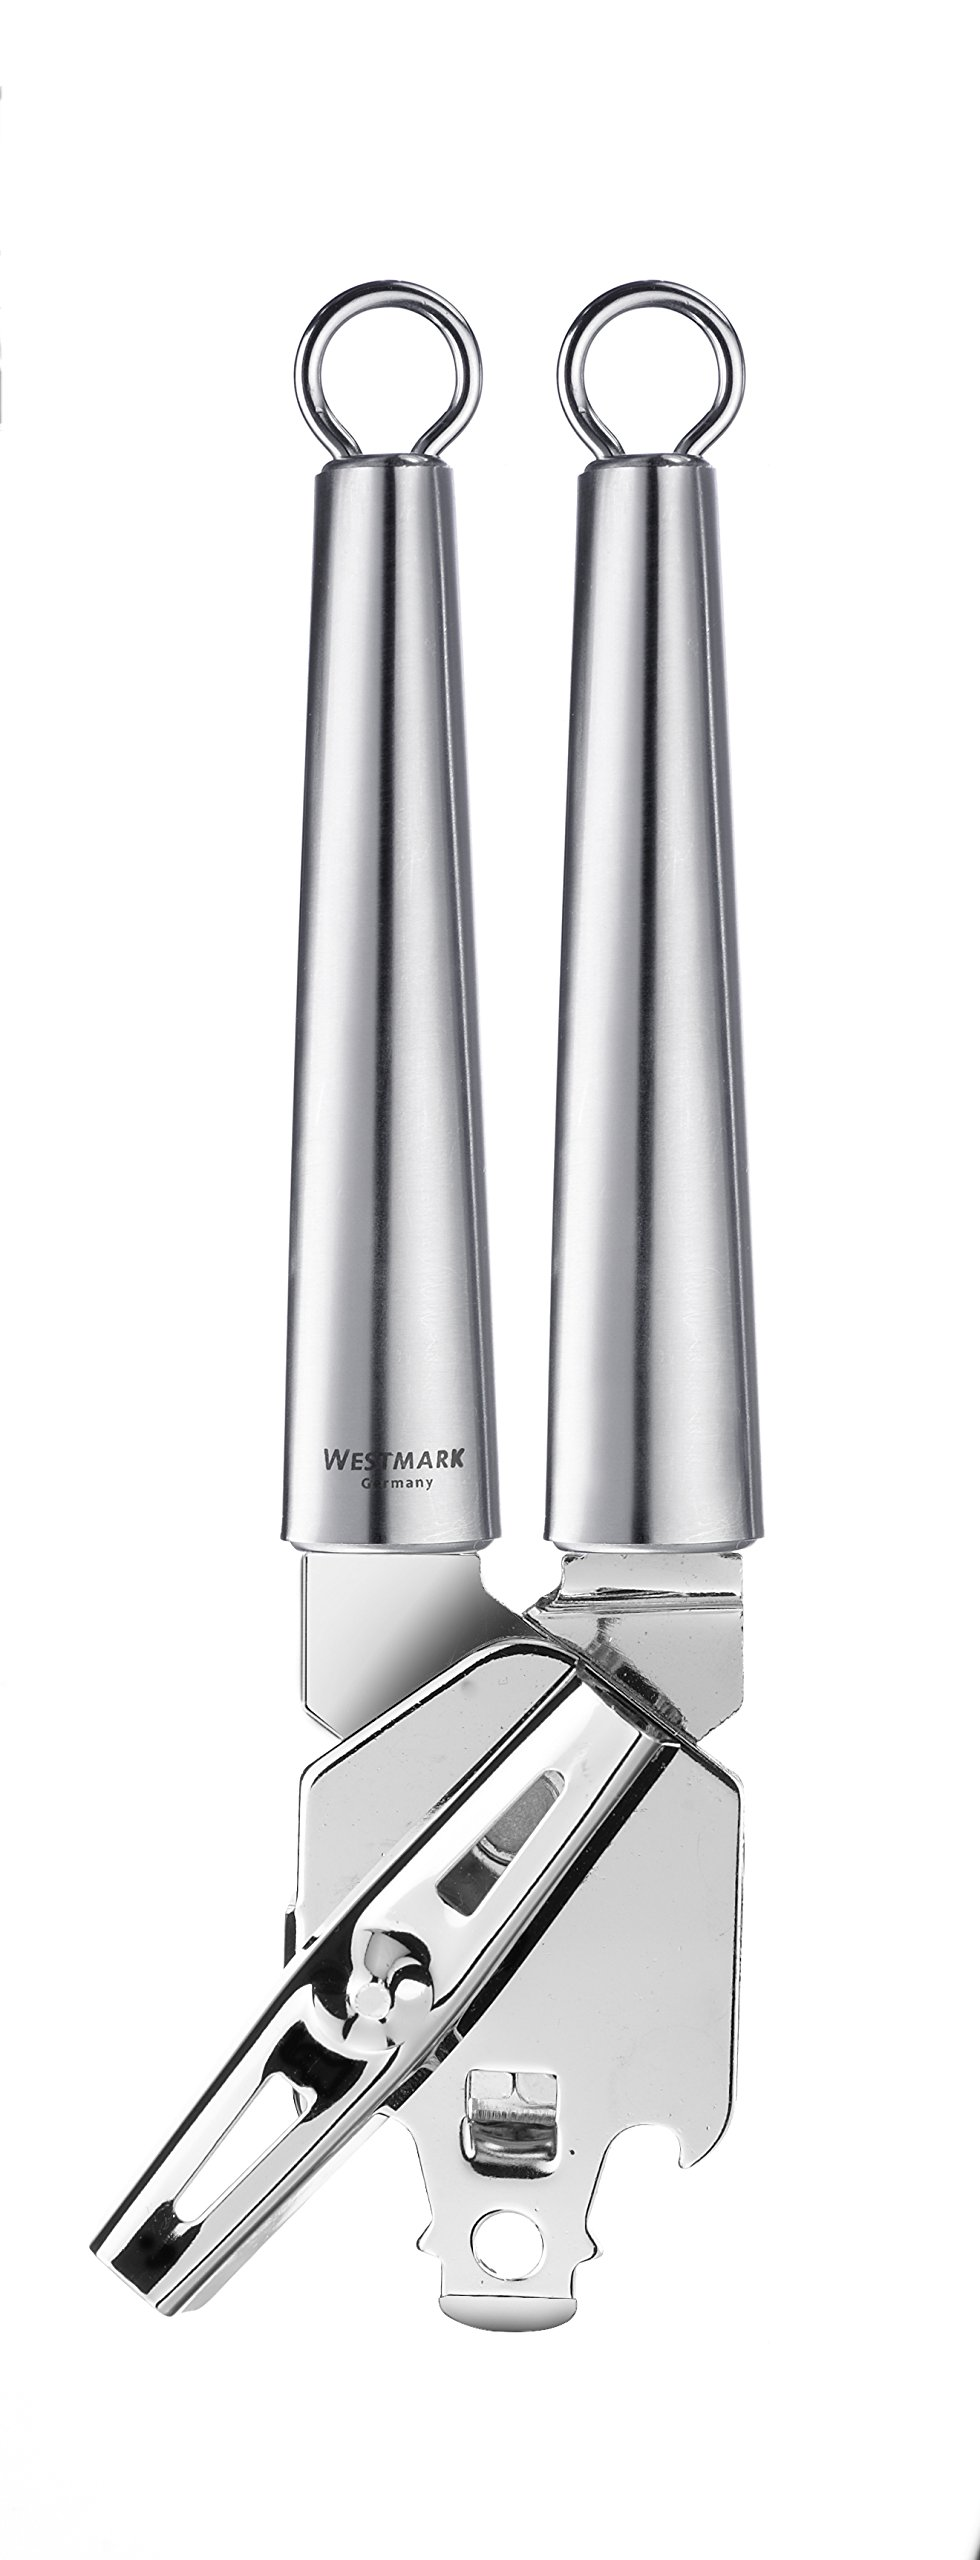 Westmark 18392270 Can opener stainless steel, A, DE by Westmark